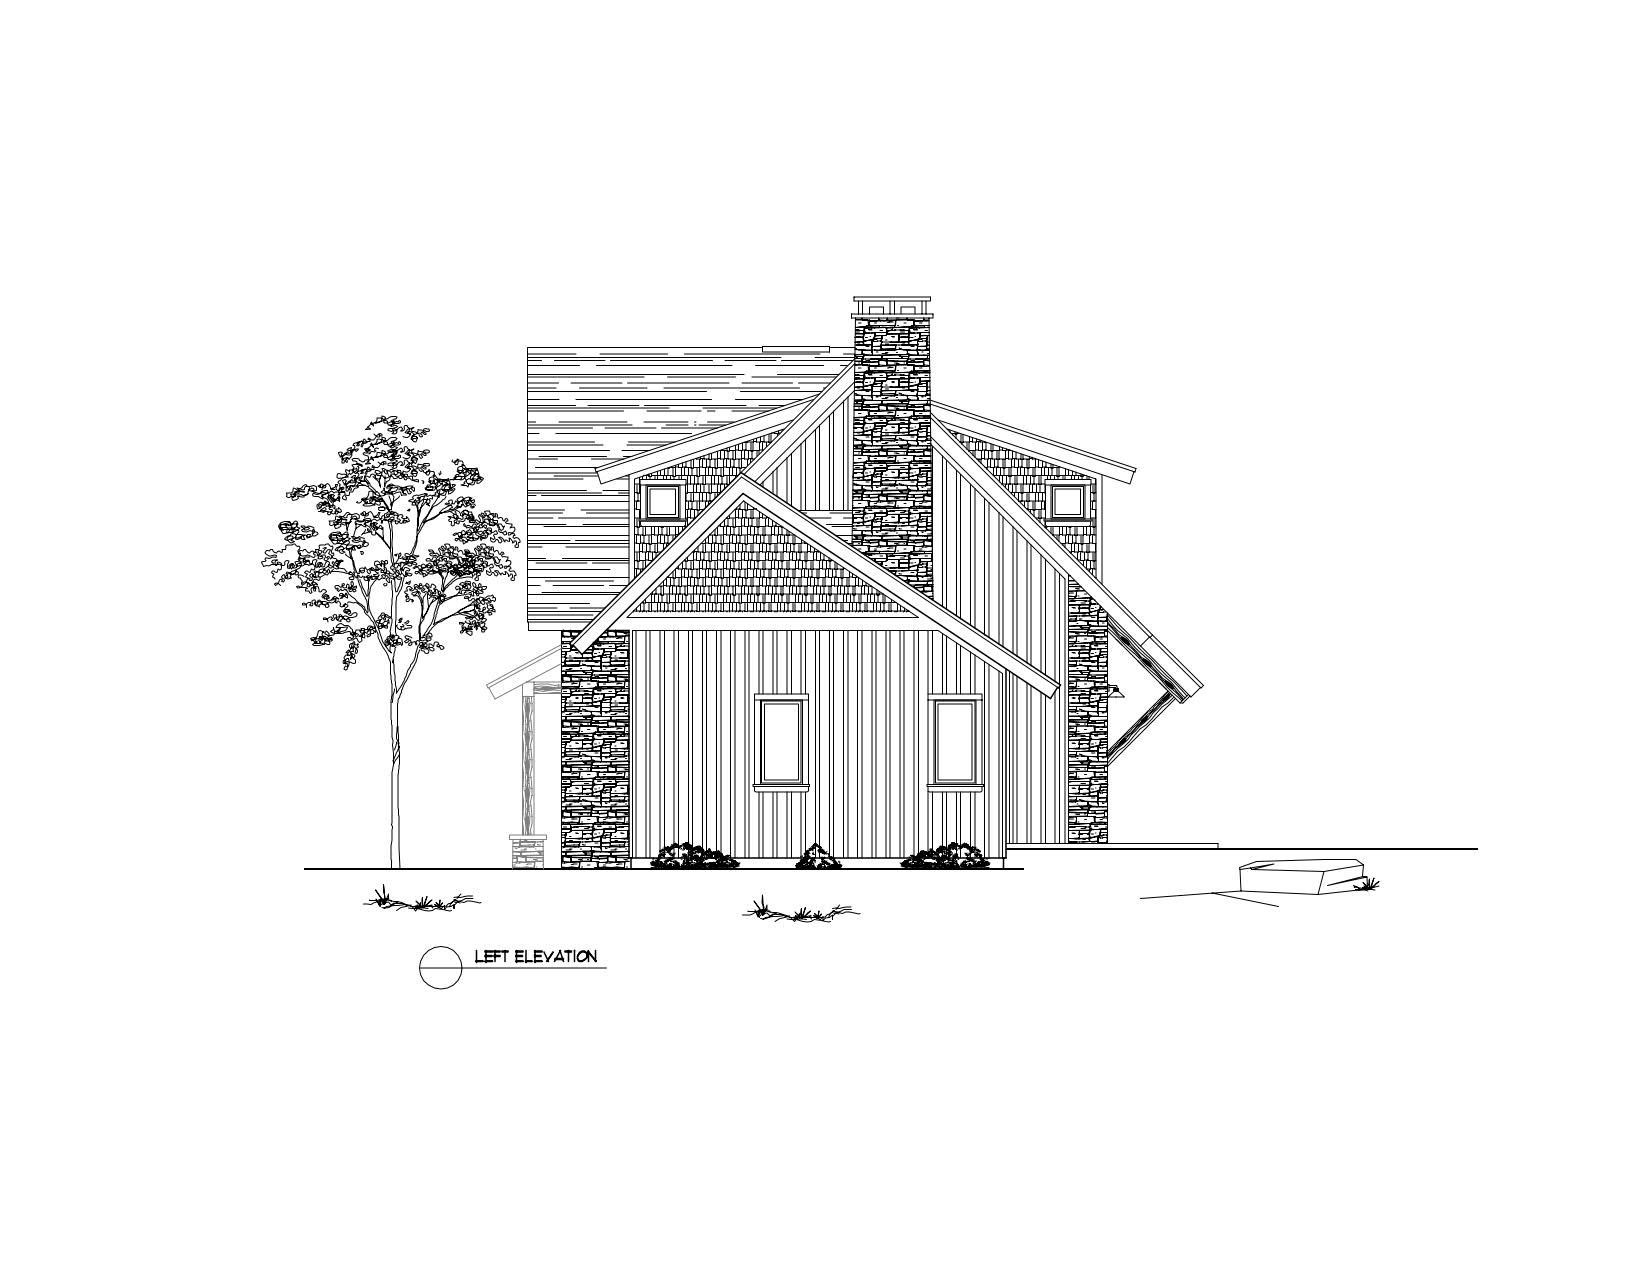 Normerica Timber Frame, House Plan, The Rosseau 3829, Left Elevation